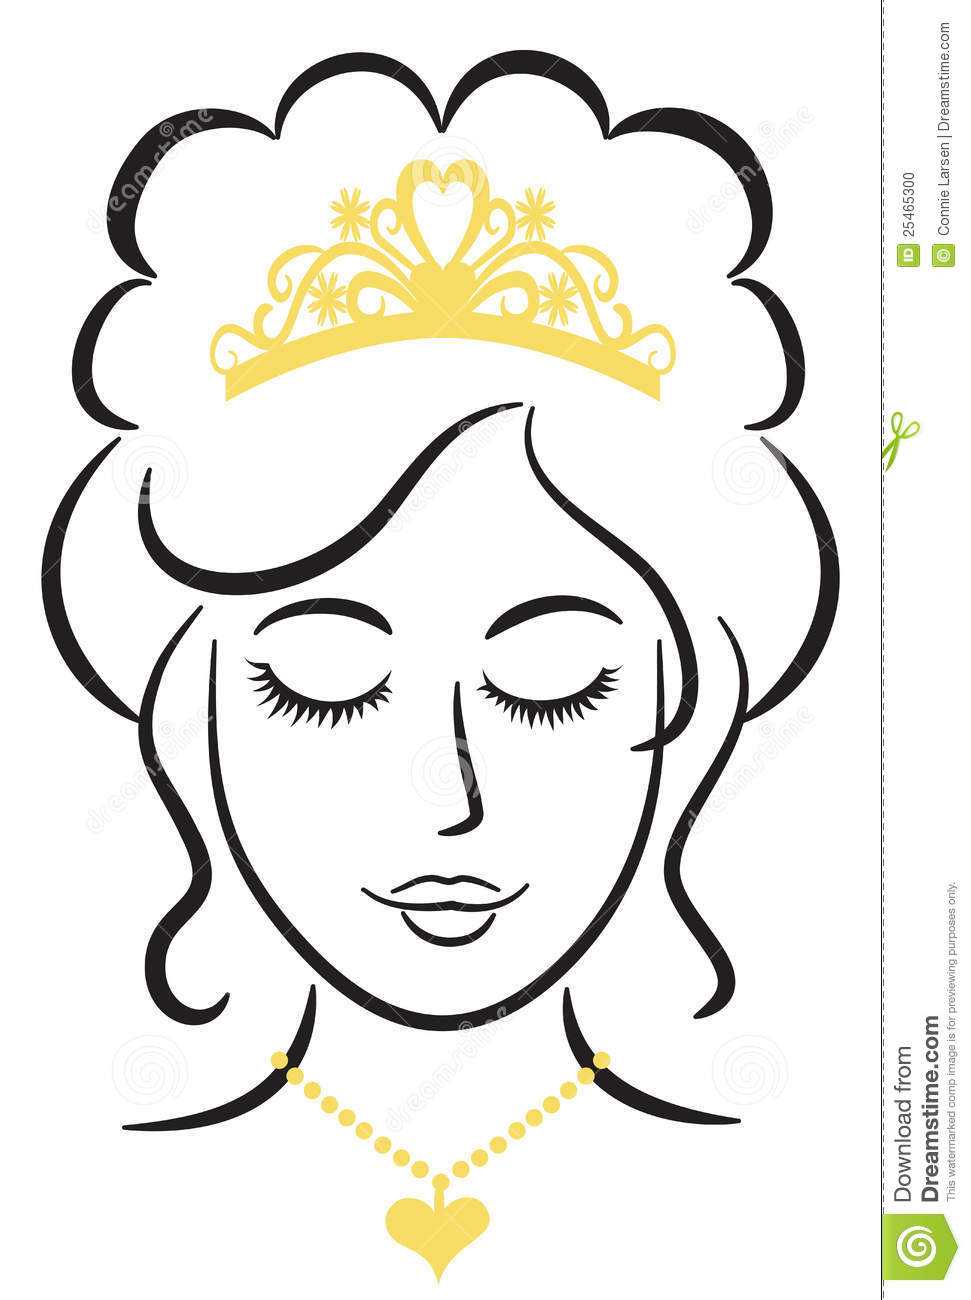 Queen clipart black and white #14